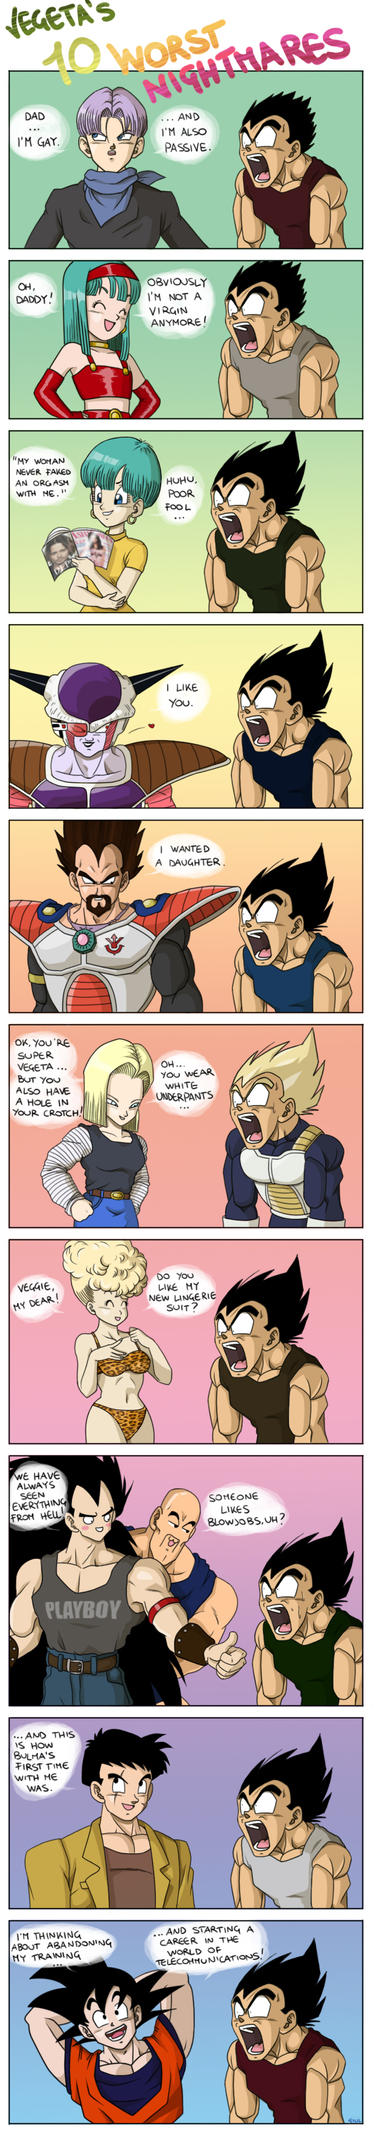 Vegeta's 10 worst nightmares by pallottili